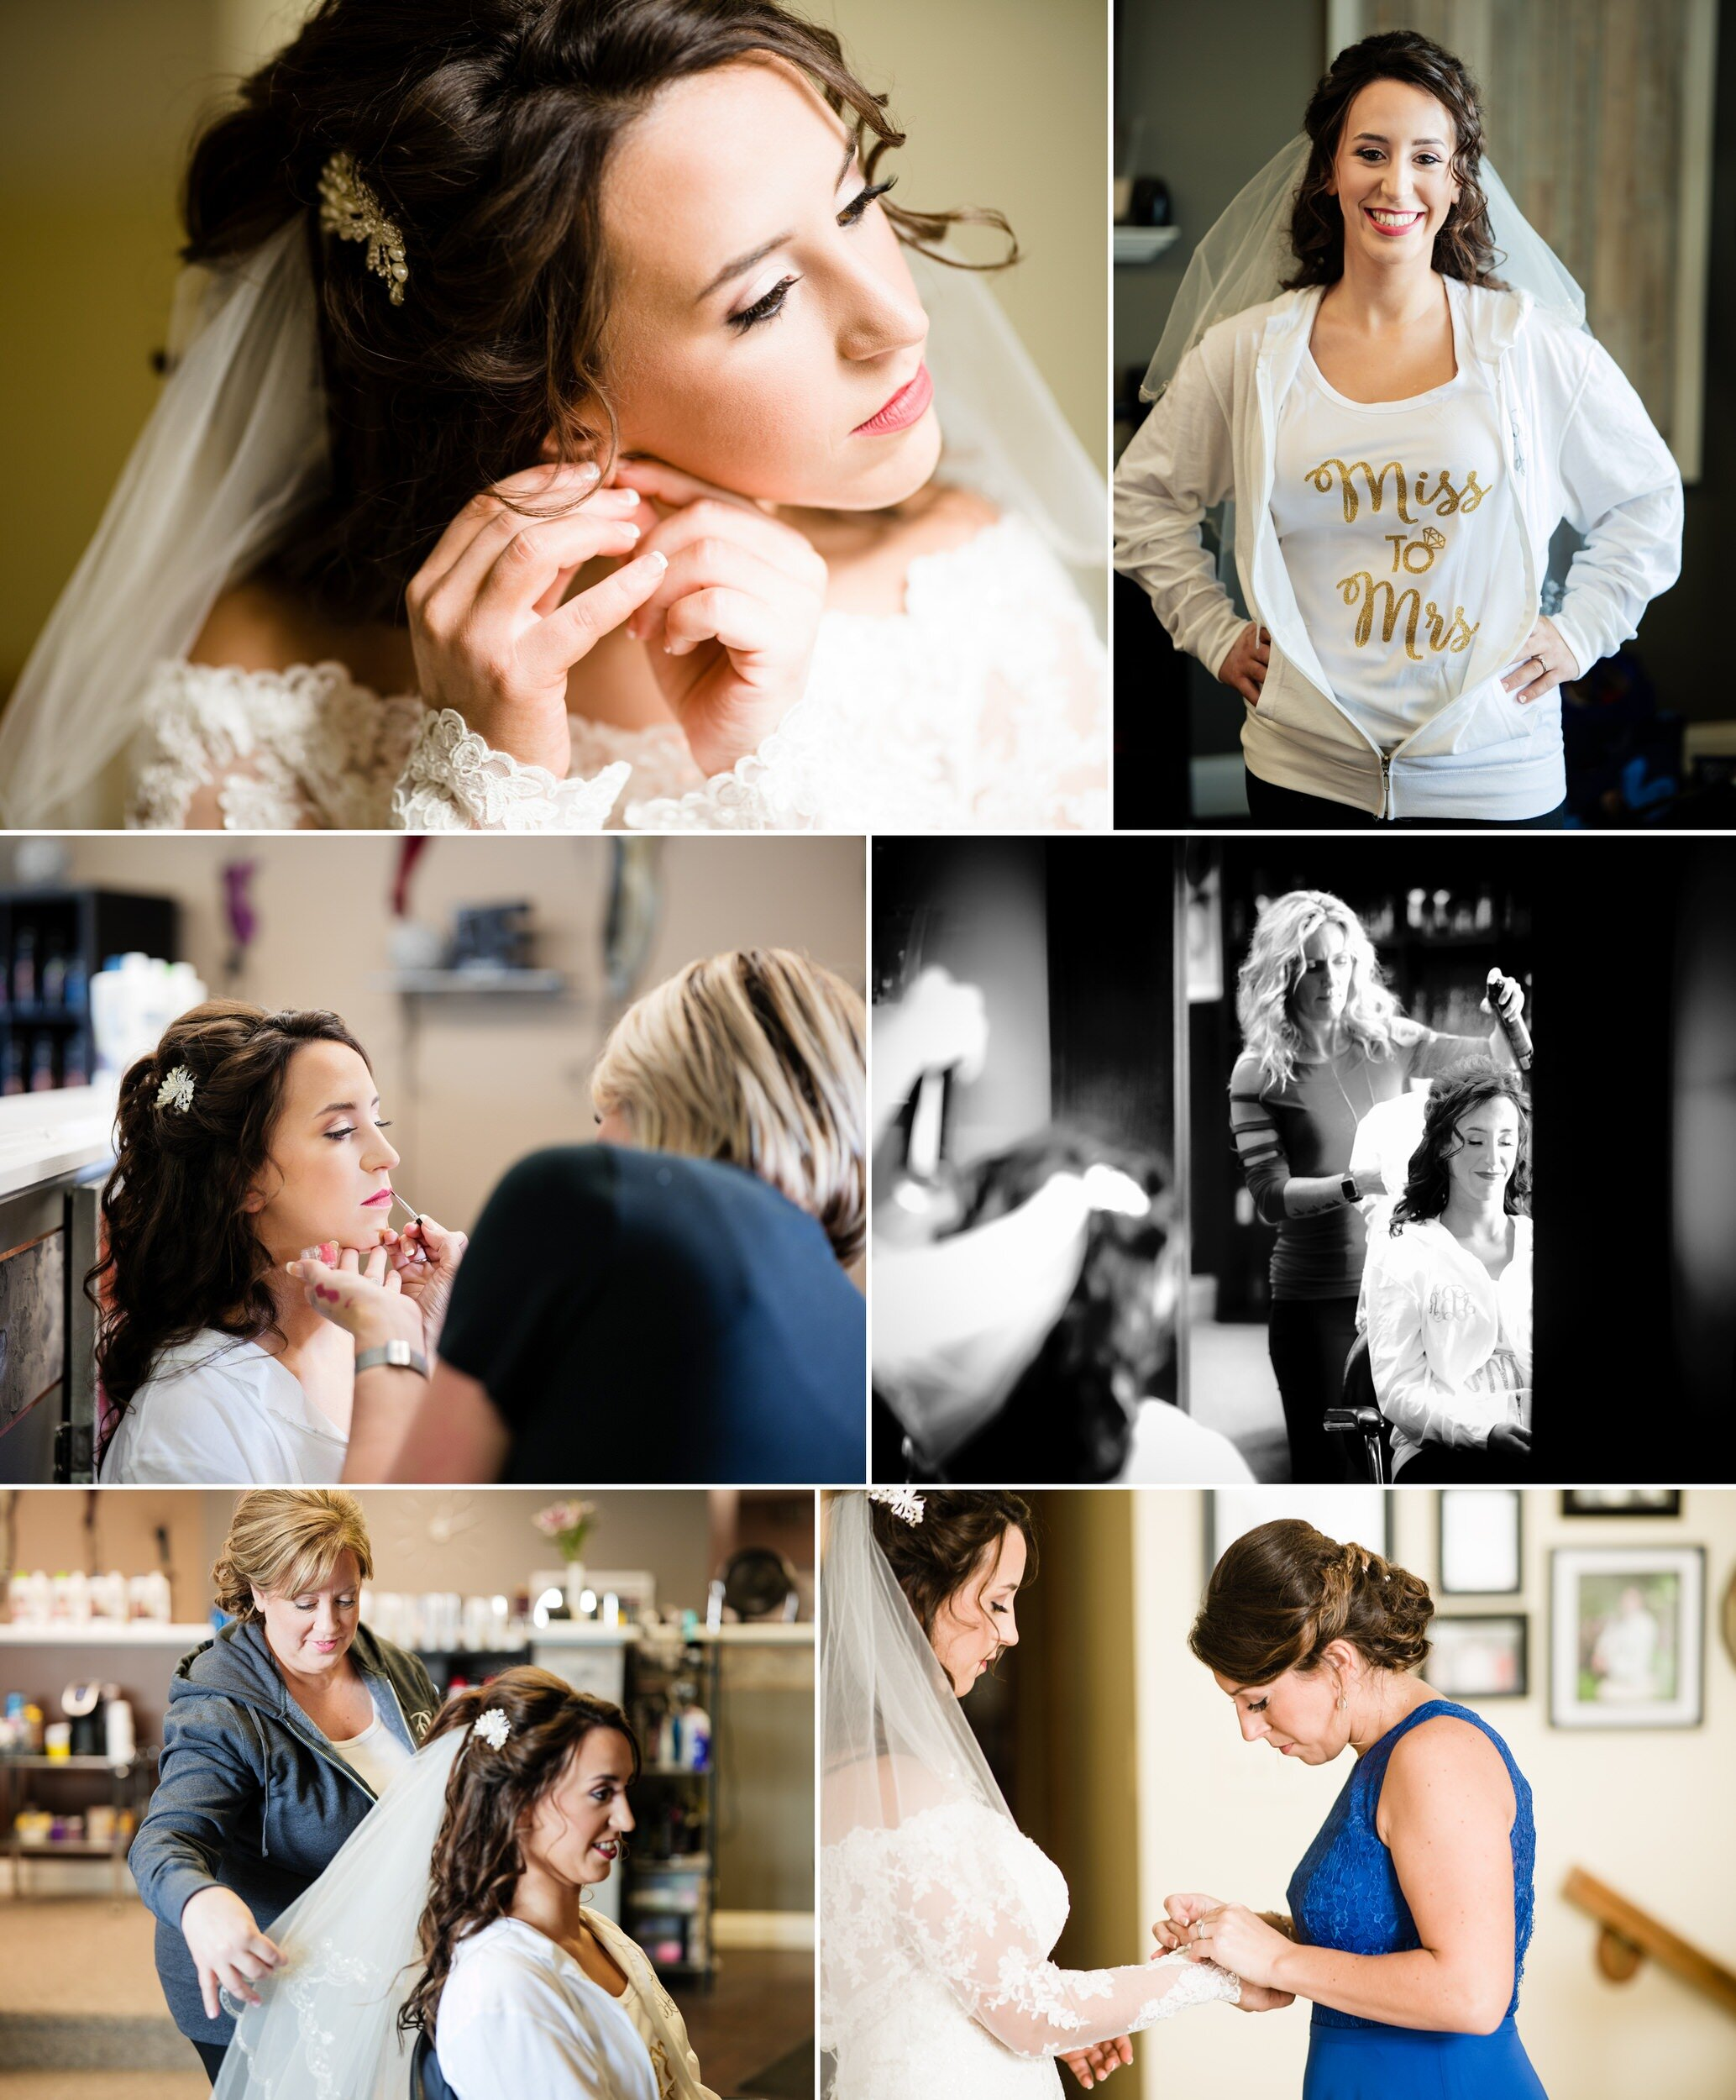 Hair and makeup for the bridal crew.